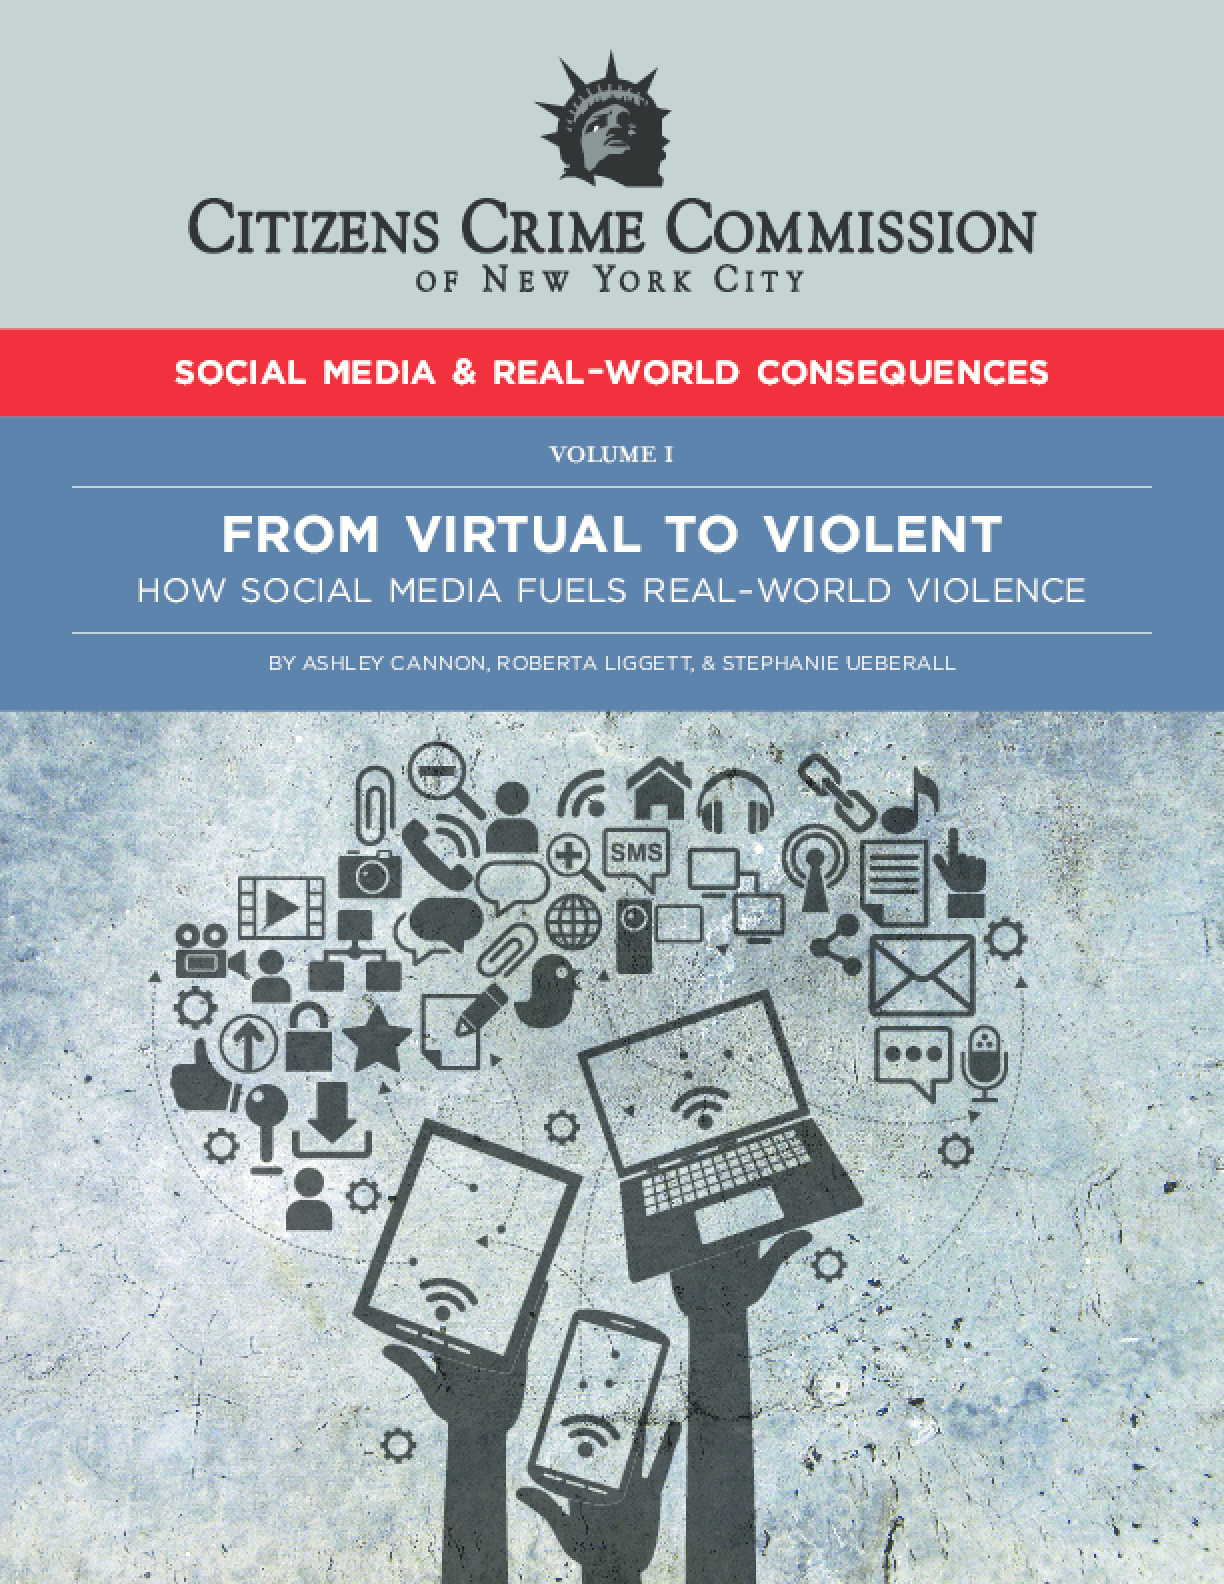 Social Media and Real-World Consequences: Volume 1 - From Virtual to Violent: How Social Media Fuels Real-World Violence